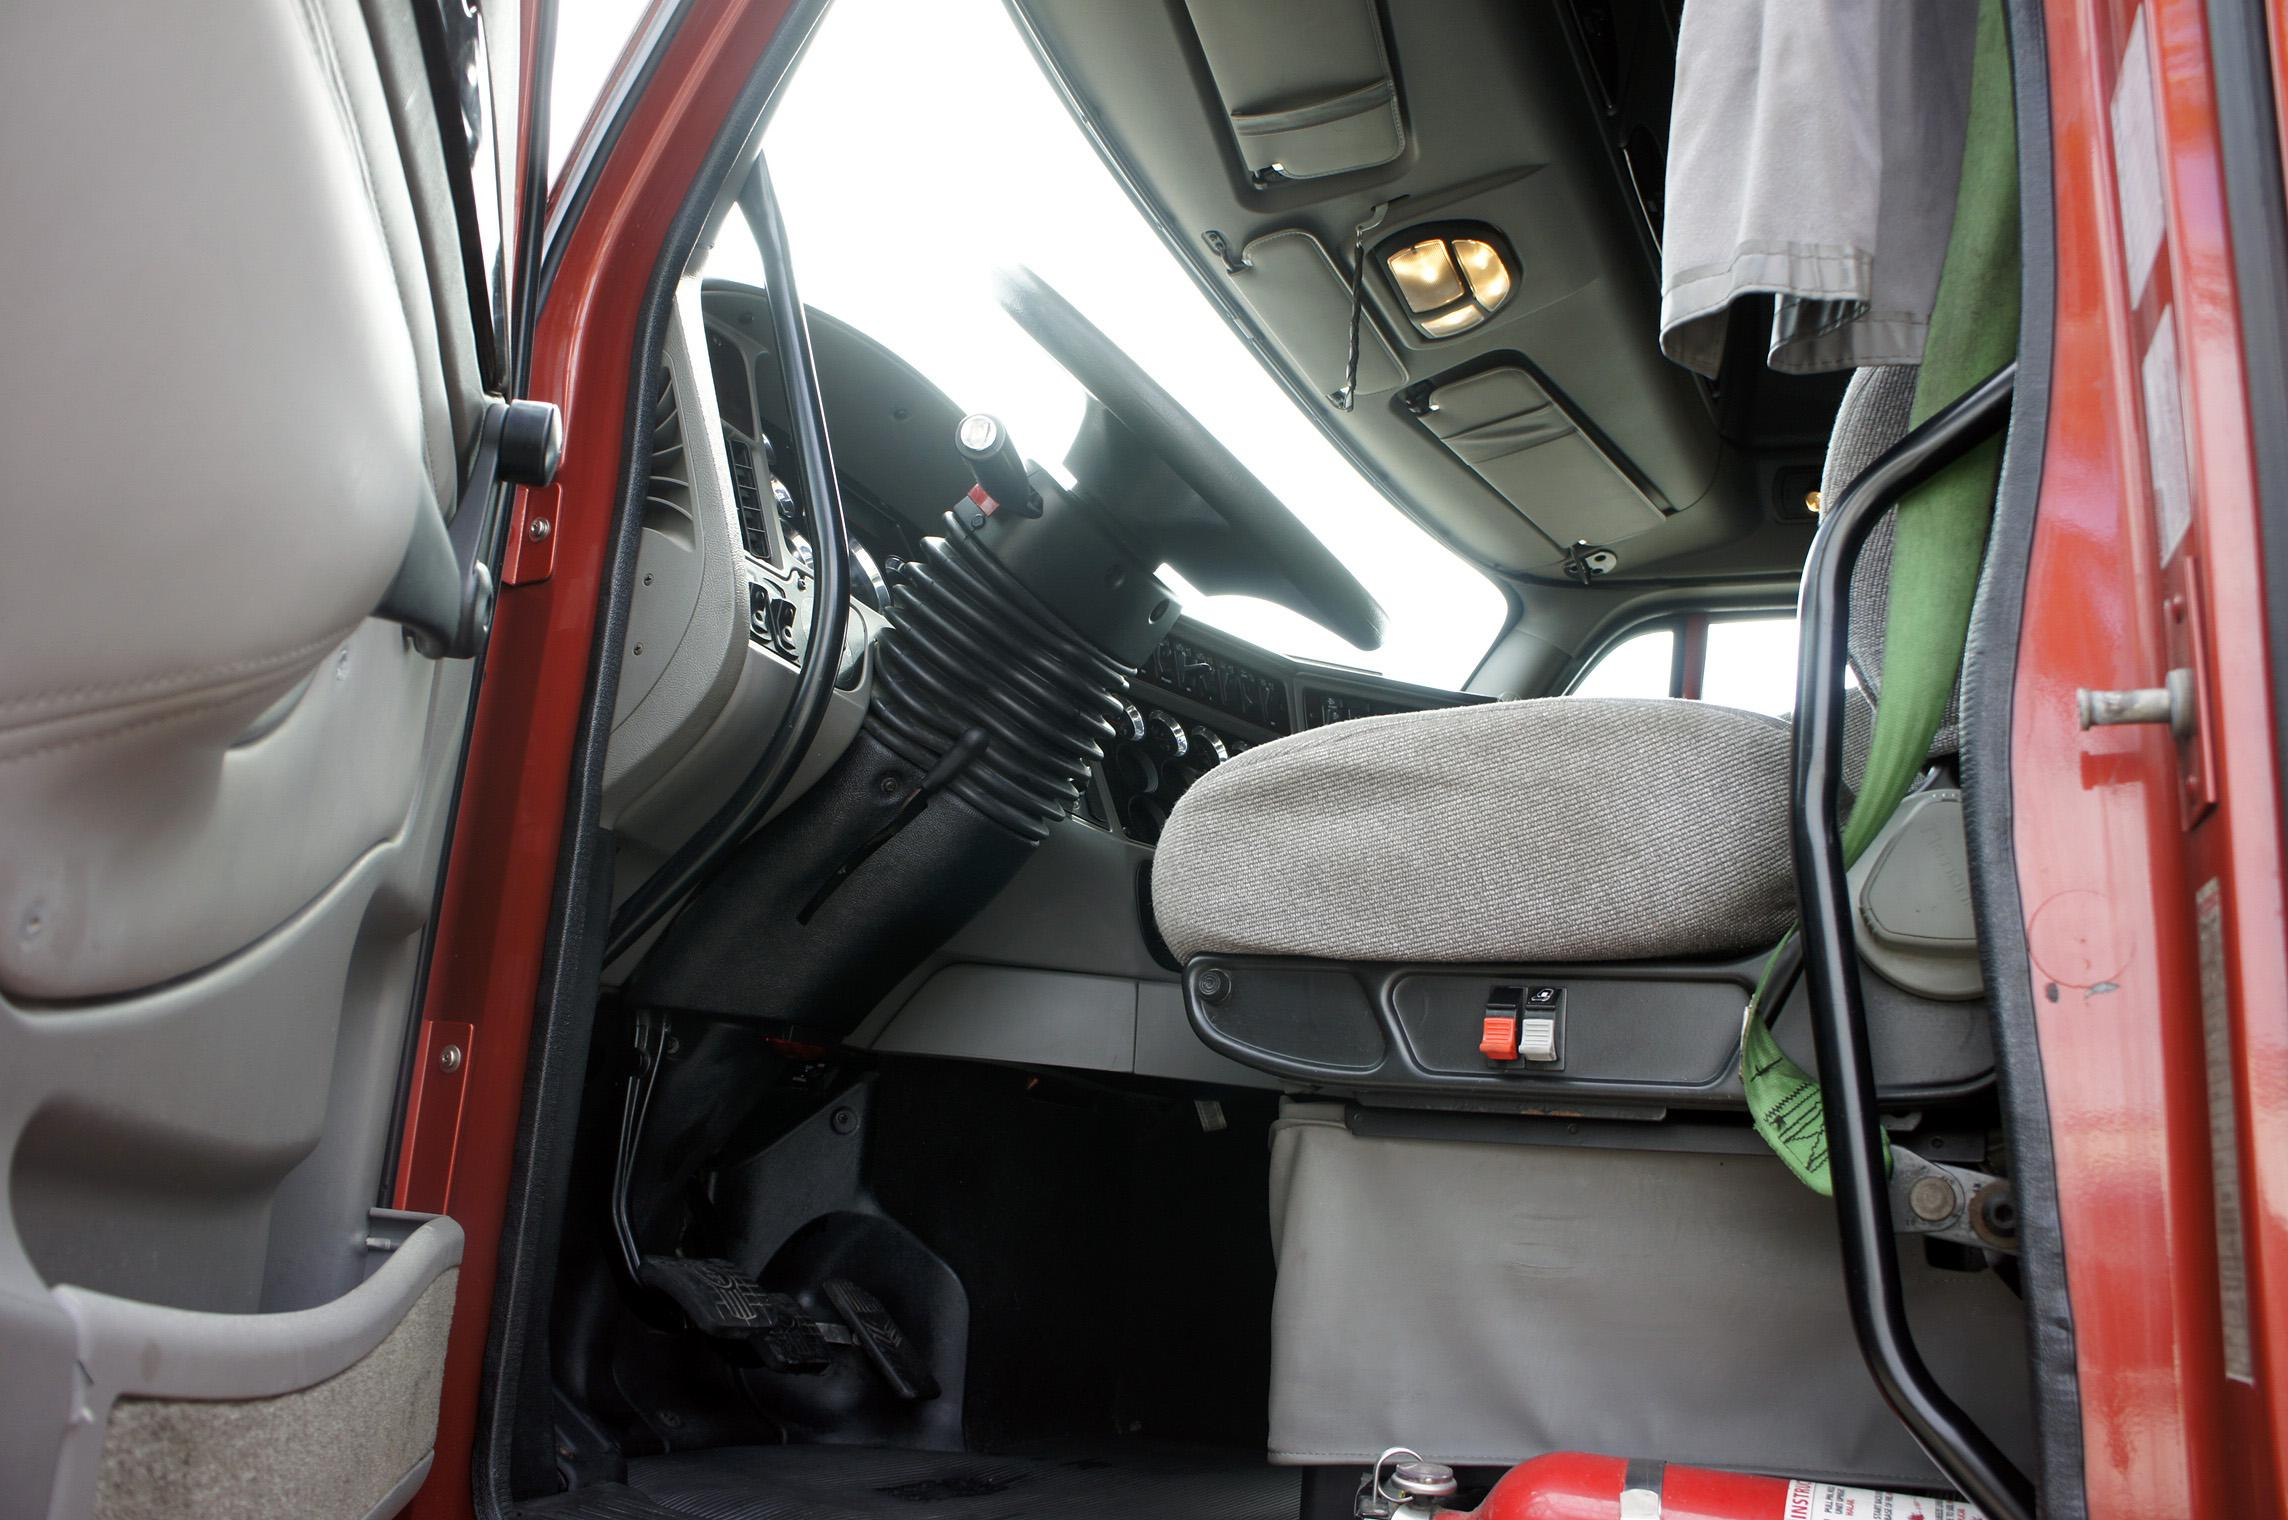 Used 2012 Kenworth T700 for sale-59051189